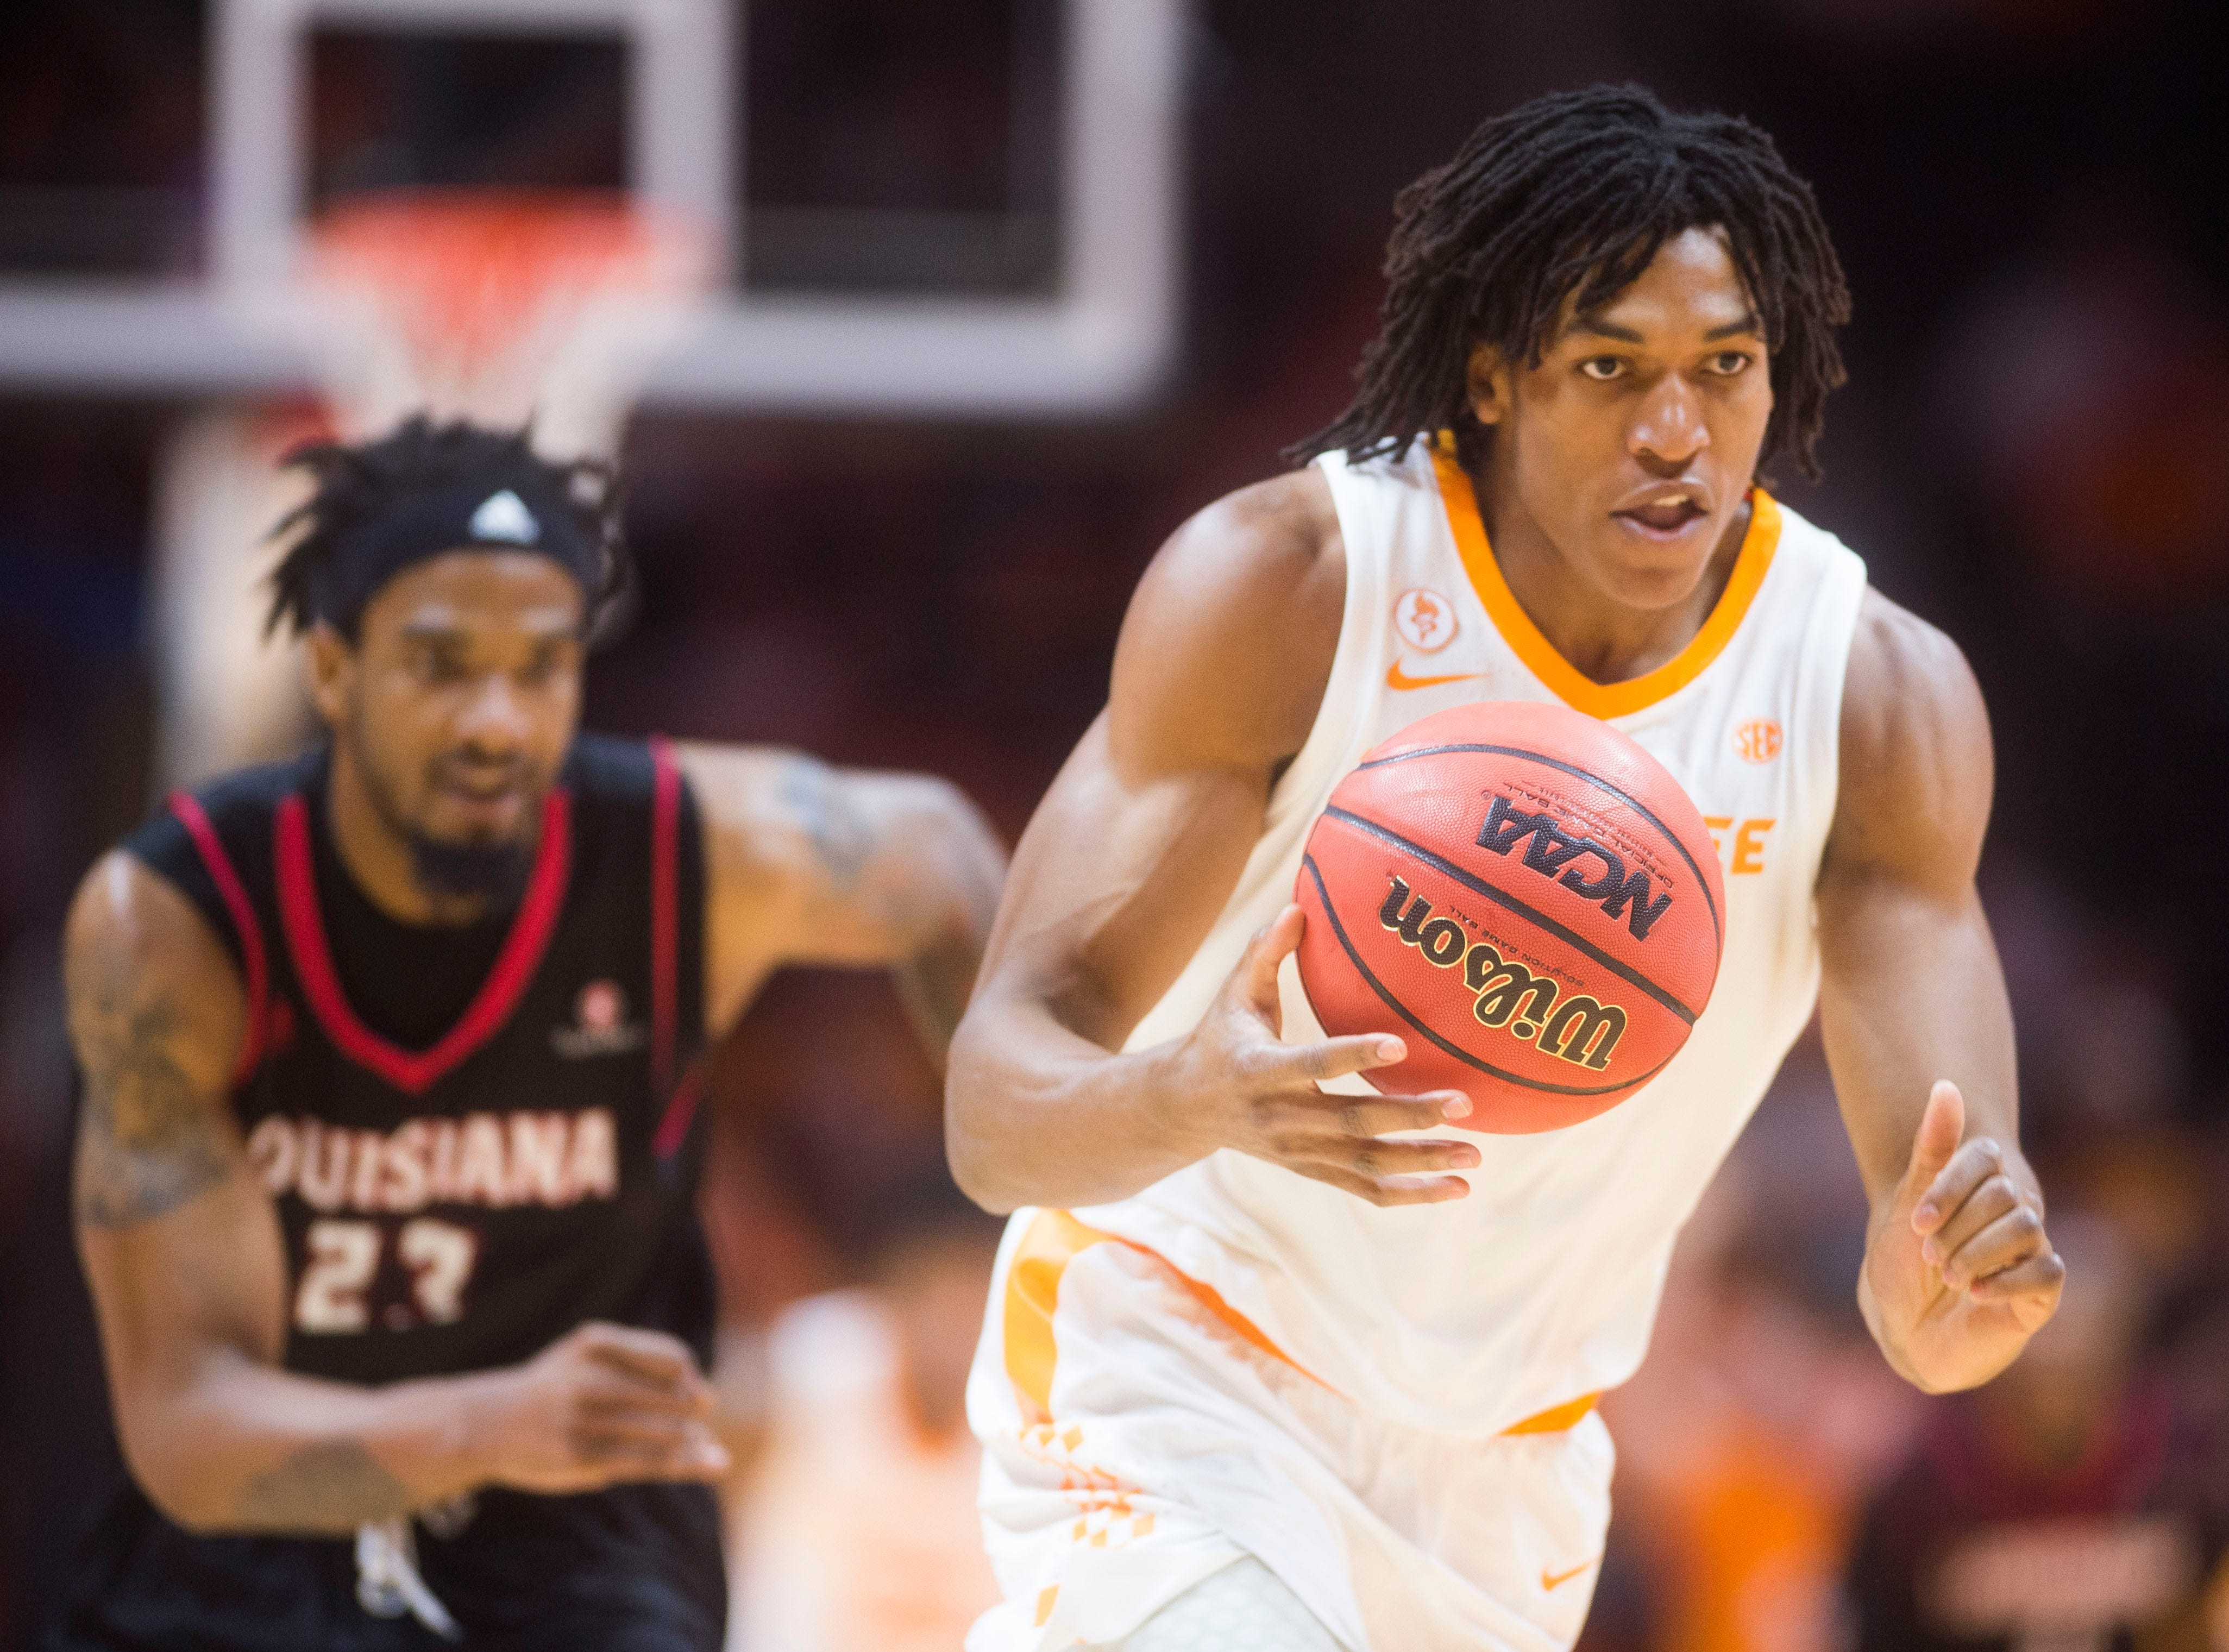 Tennessee's Yves Pons (35) charges down the court with the ball during a game between Tennessee and Louisiana in Thompson-Boling Arena Friday, Nov. 9, 2018. Tennessee defeated Louisiana 87-65.